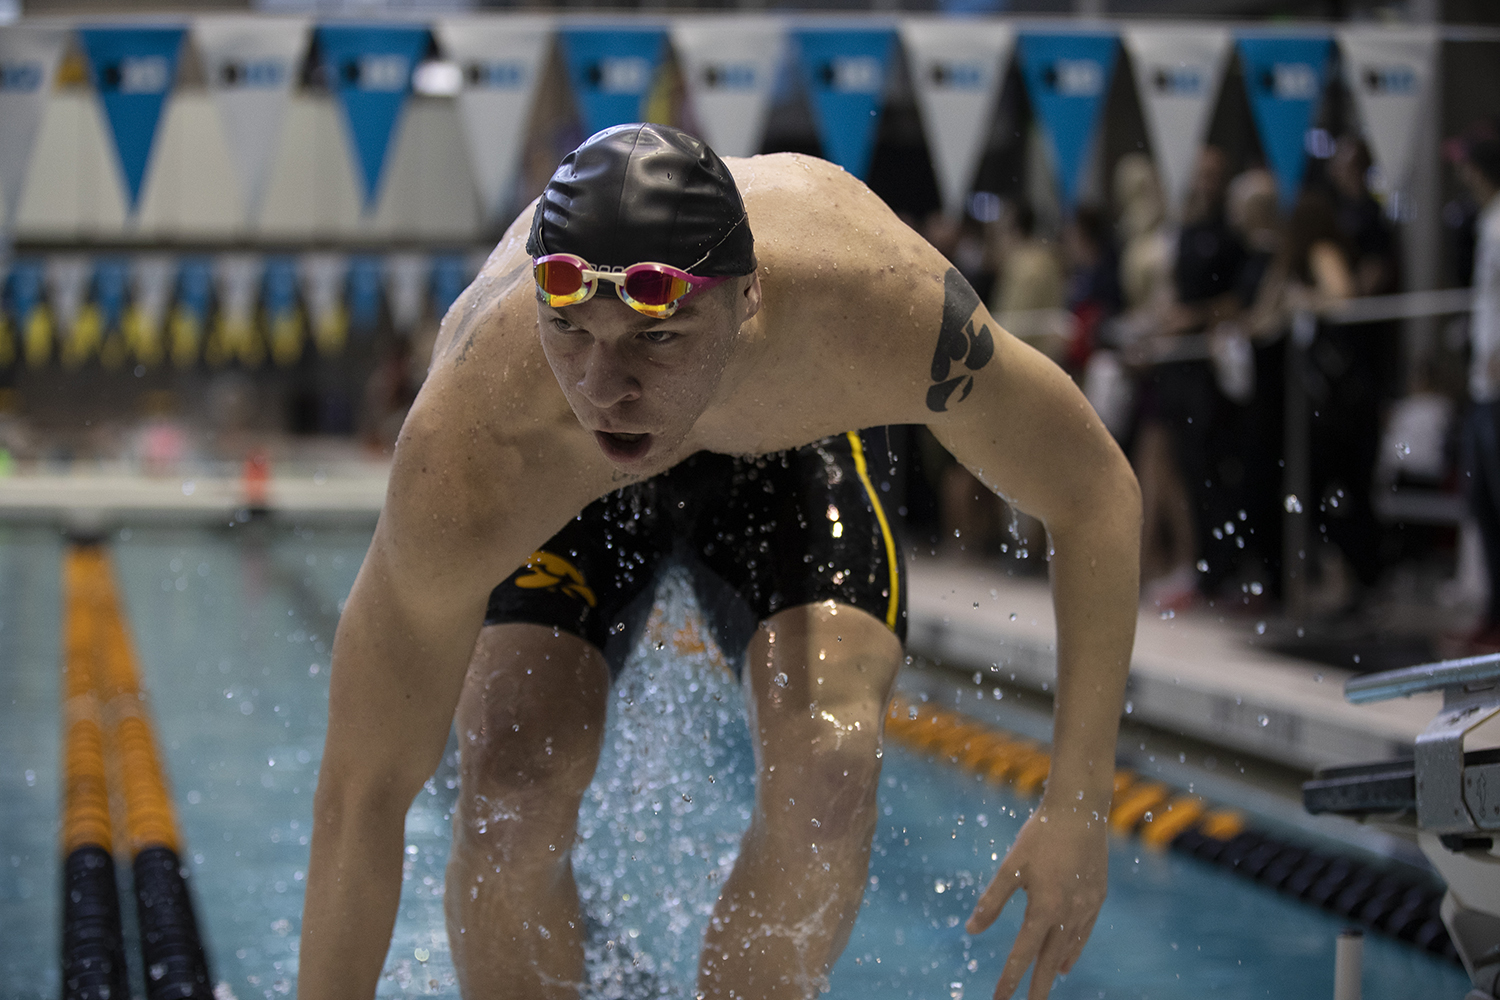 Tanner+Nelson+gets+out+of+the+pool+after+swimming+the+100+breast+stroke+during+preliminary+competition+of+the+Big+10+Swimming+Championships+on+Friday%2C+March+1%2C+2019.+